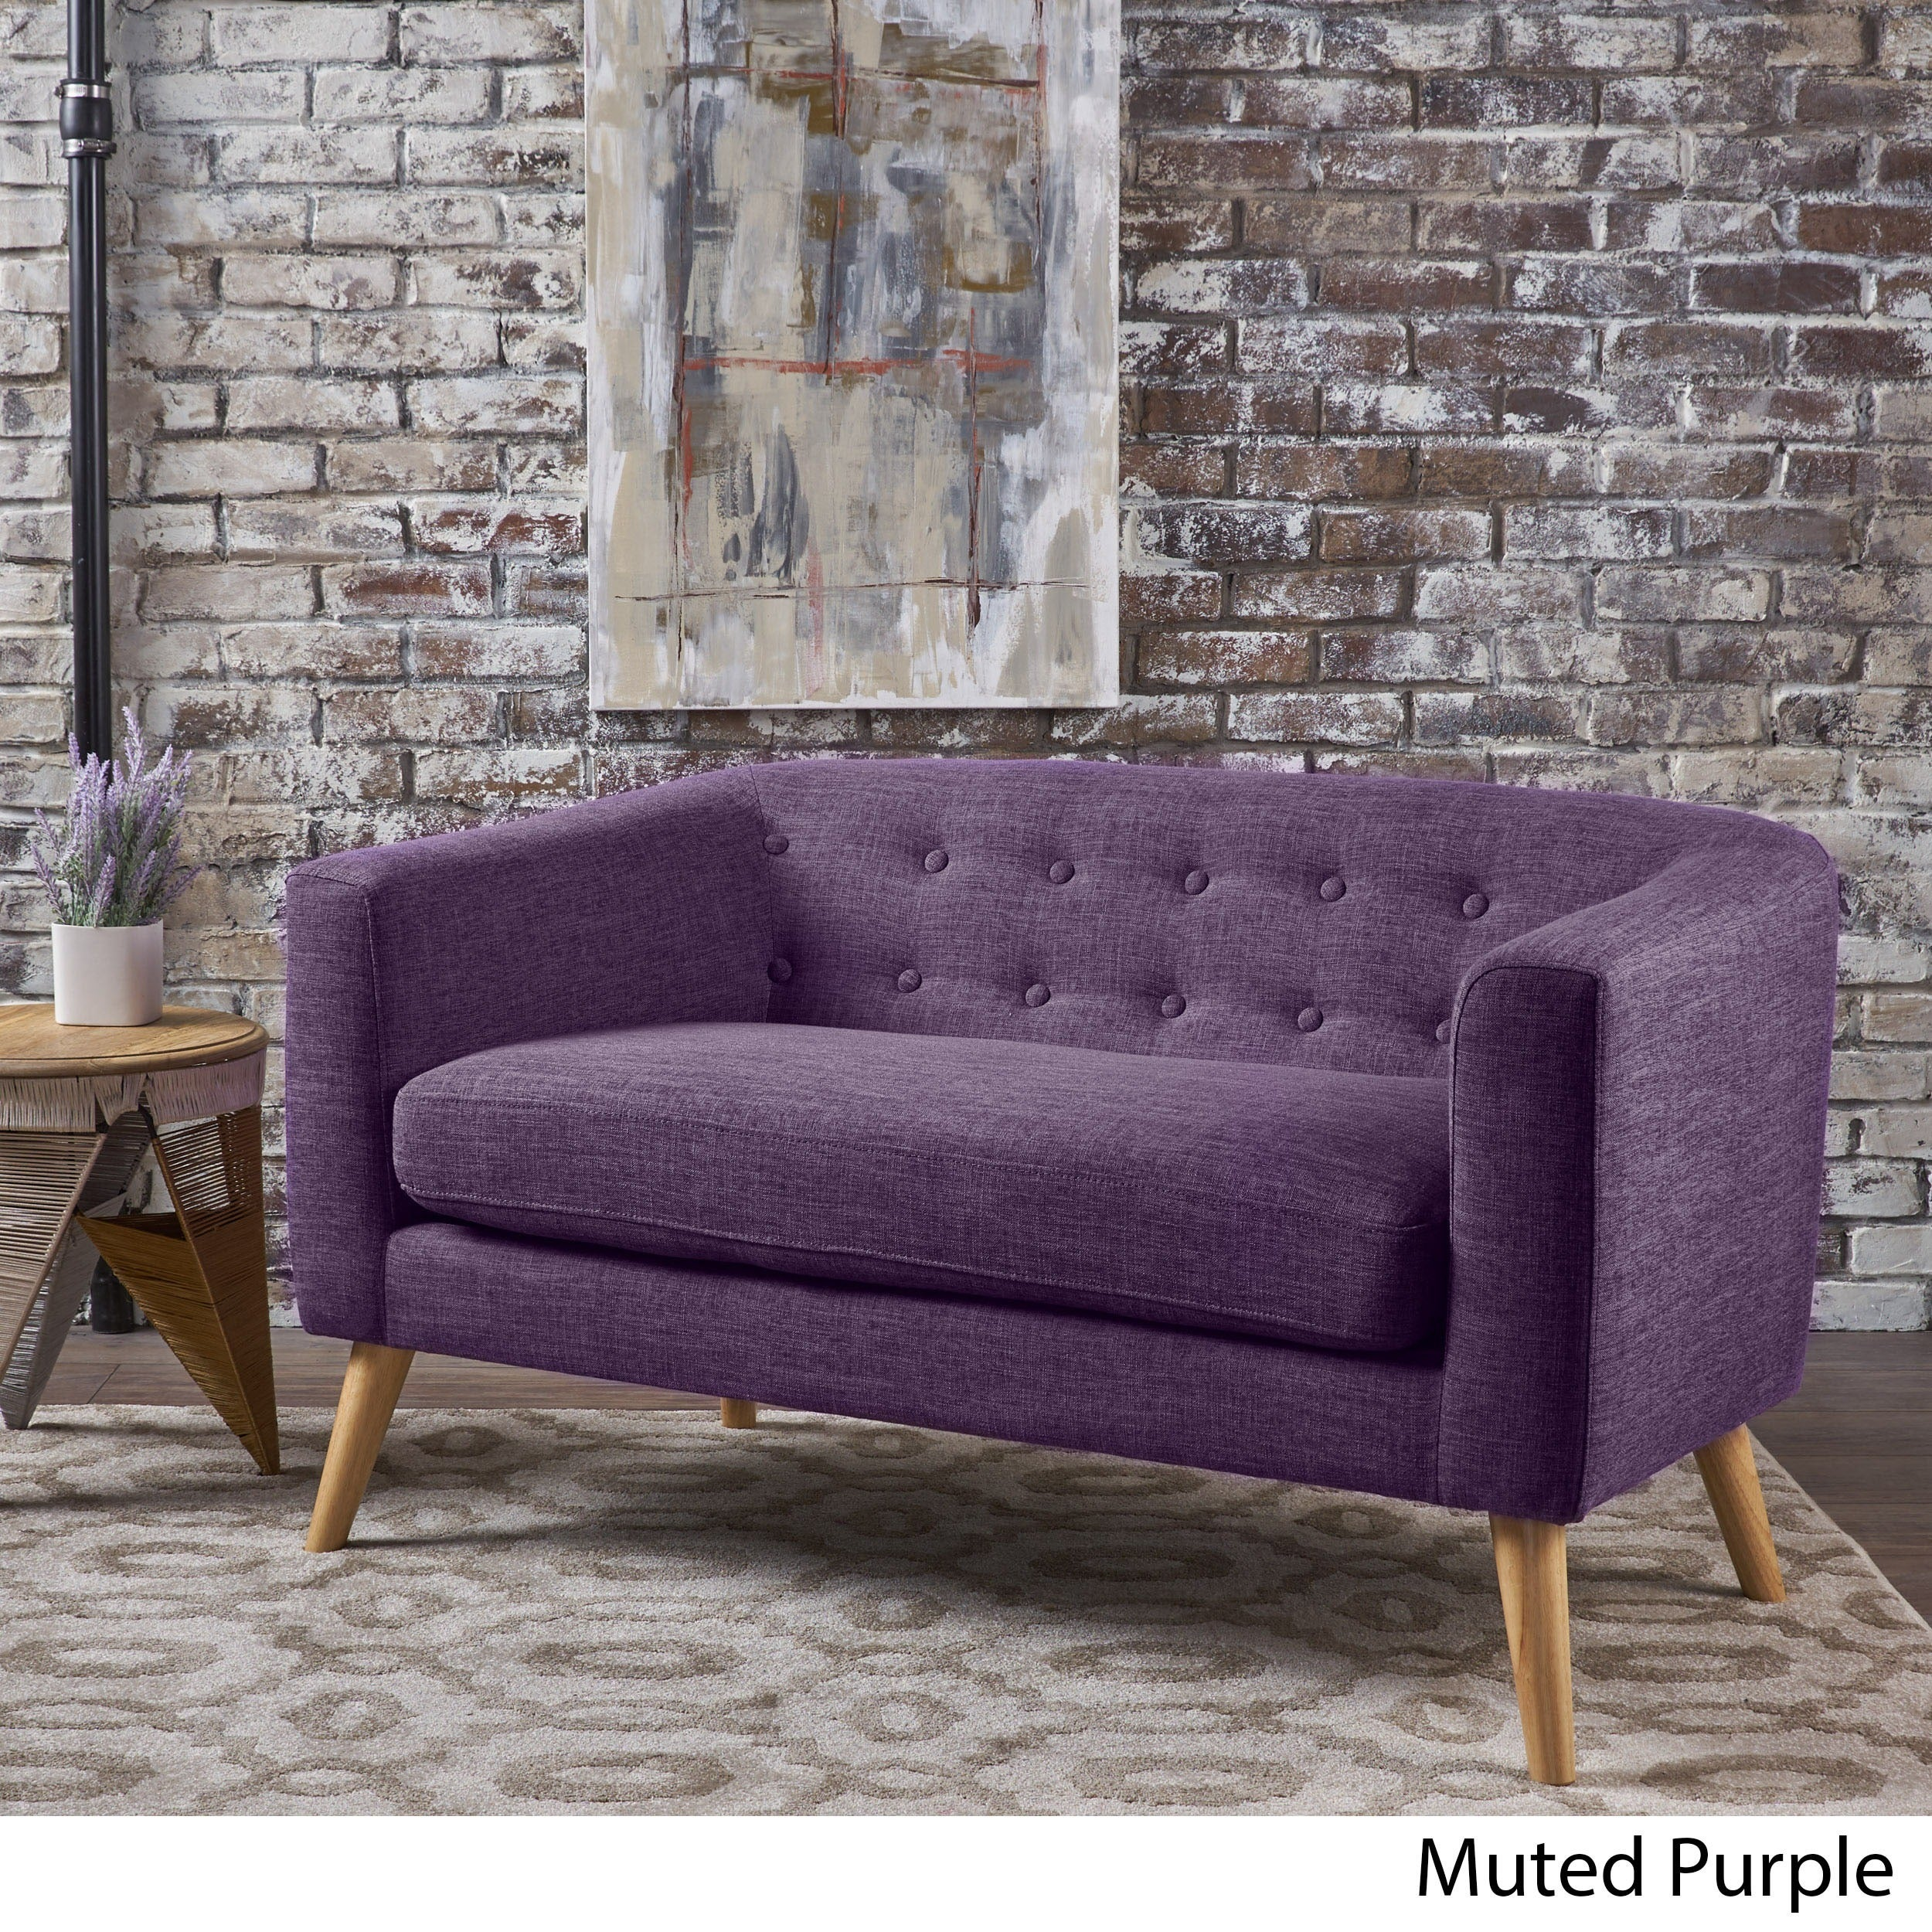 Sensational Bridie Mid Century Fabric Loveseat By Christopher Knight Home Bralicious Painted Fabric Chair Ideas Braliciousco